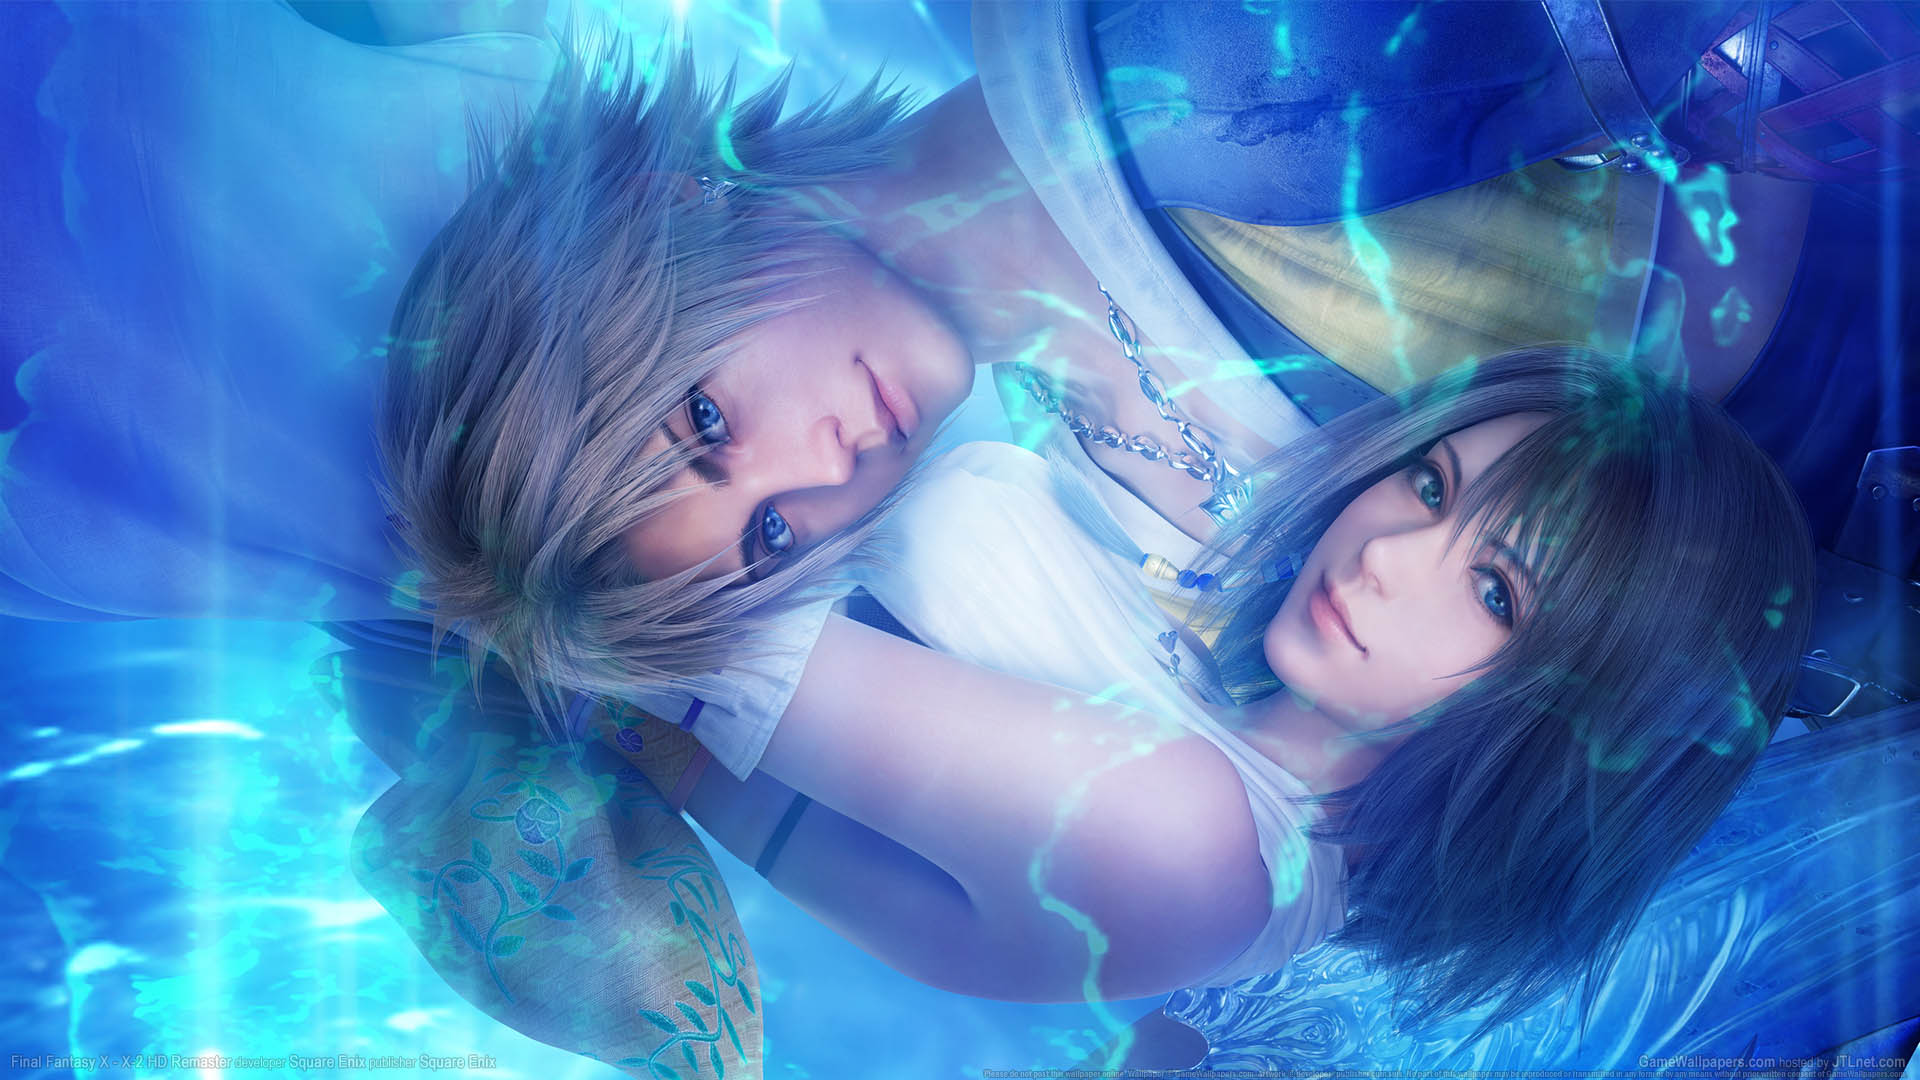 X X 2 Final Fantasy X X 2 Hd Wallpapers Or Desktop Backgrounds